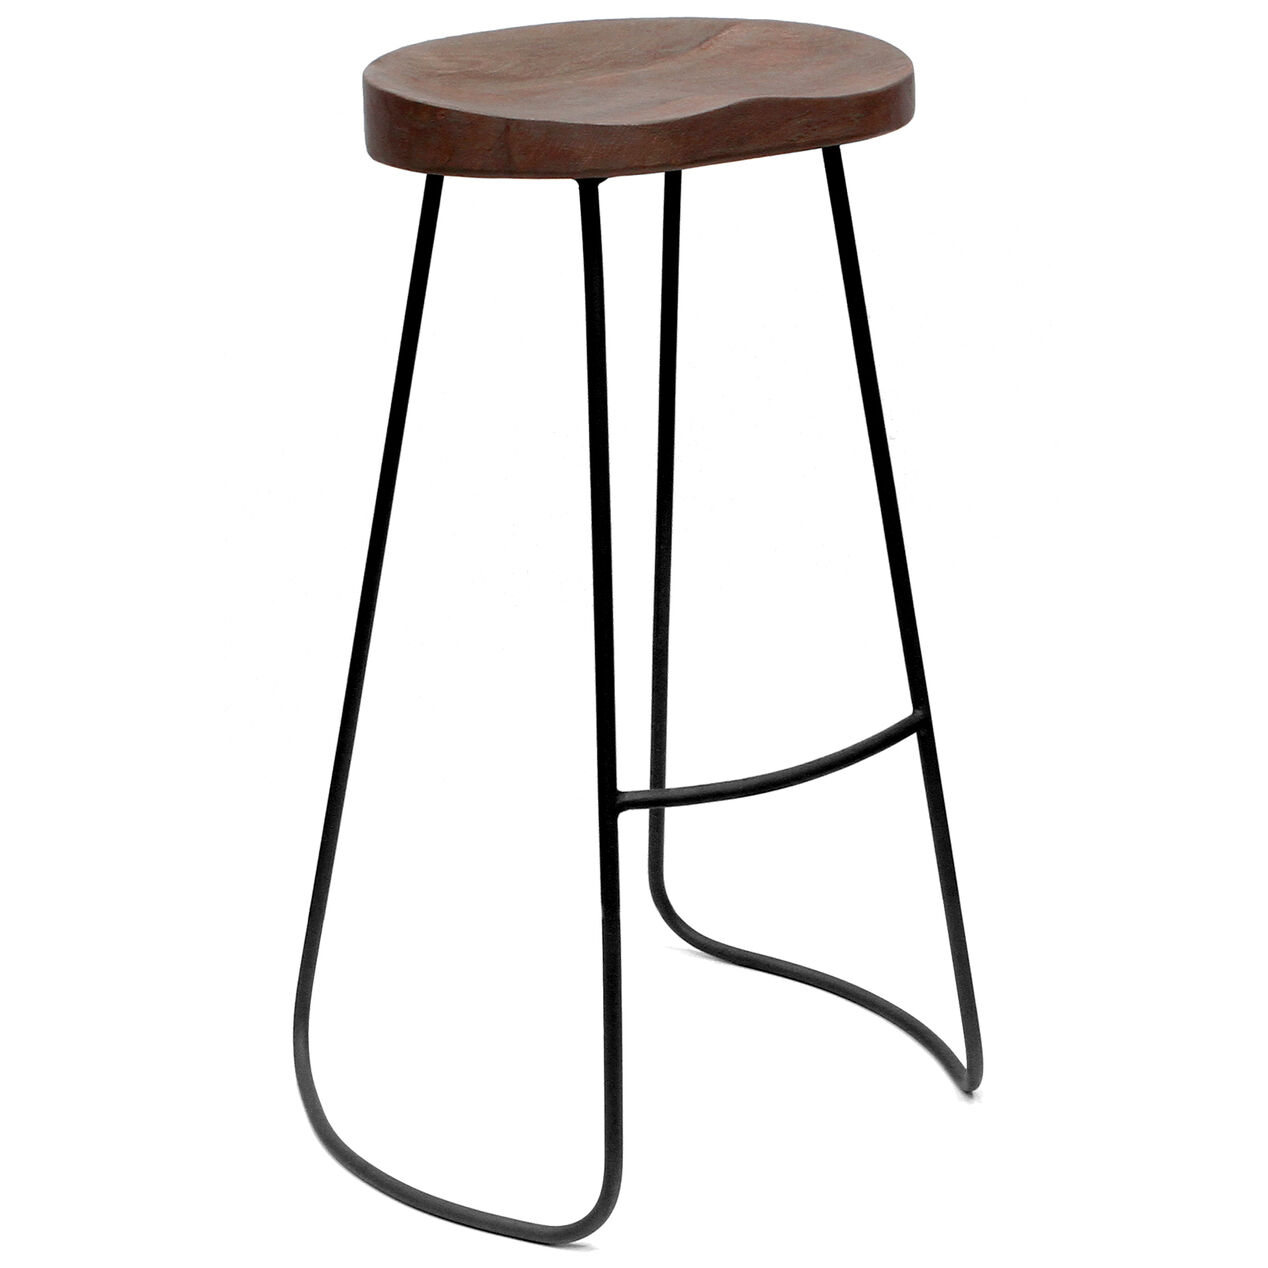 Gavin Barstool Chestnut Wood 30 in At Home